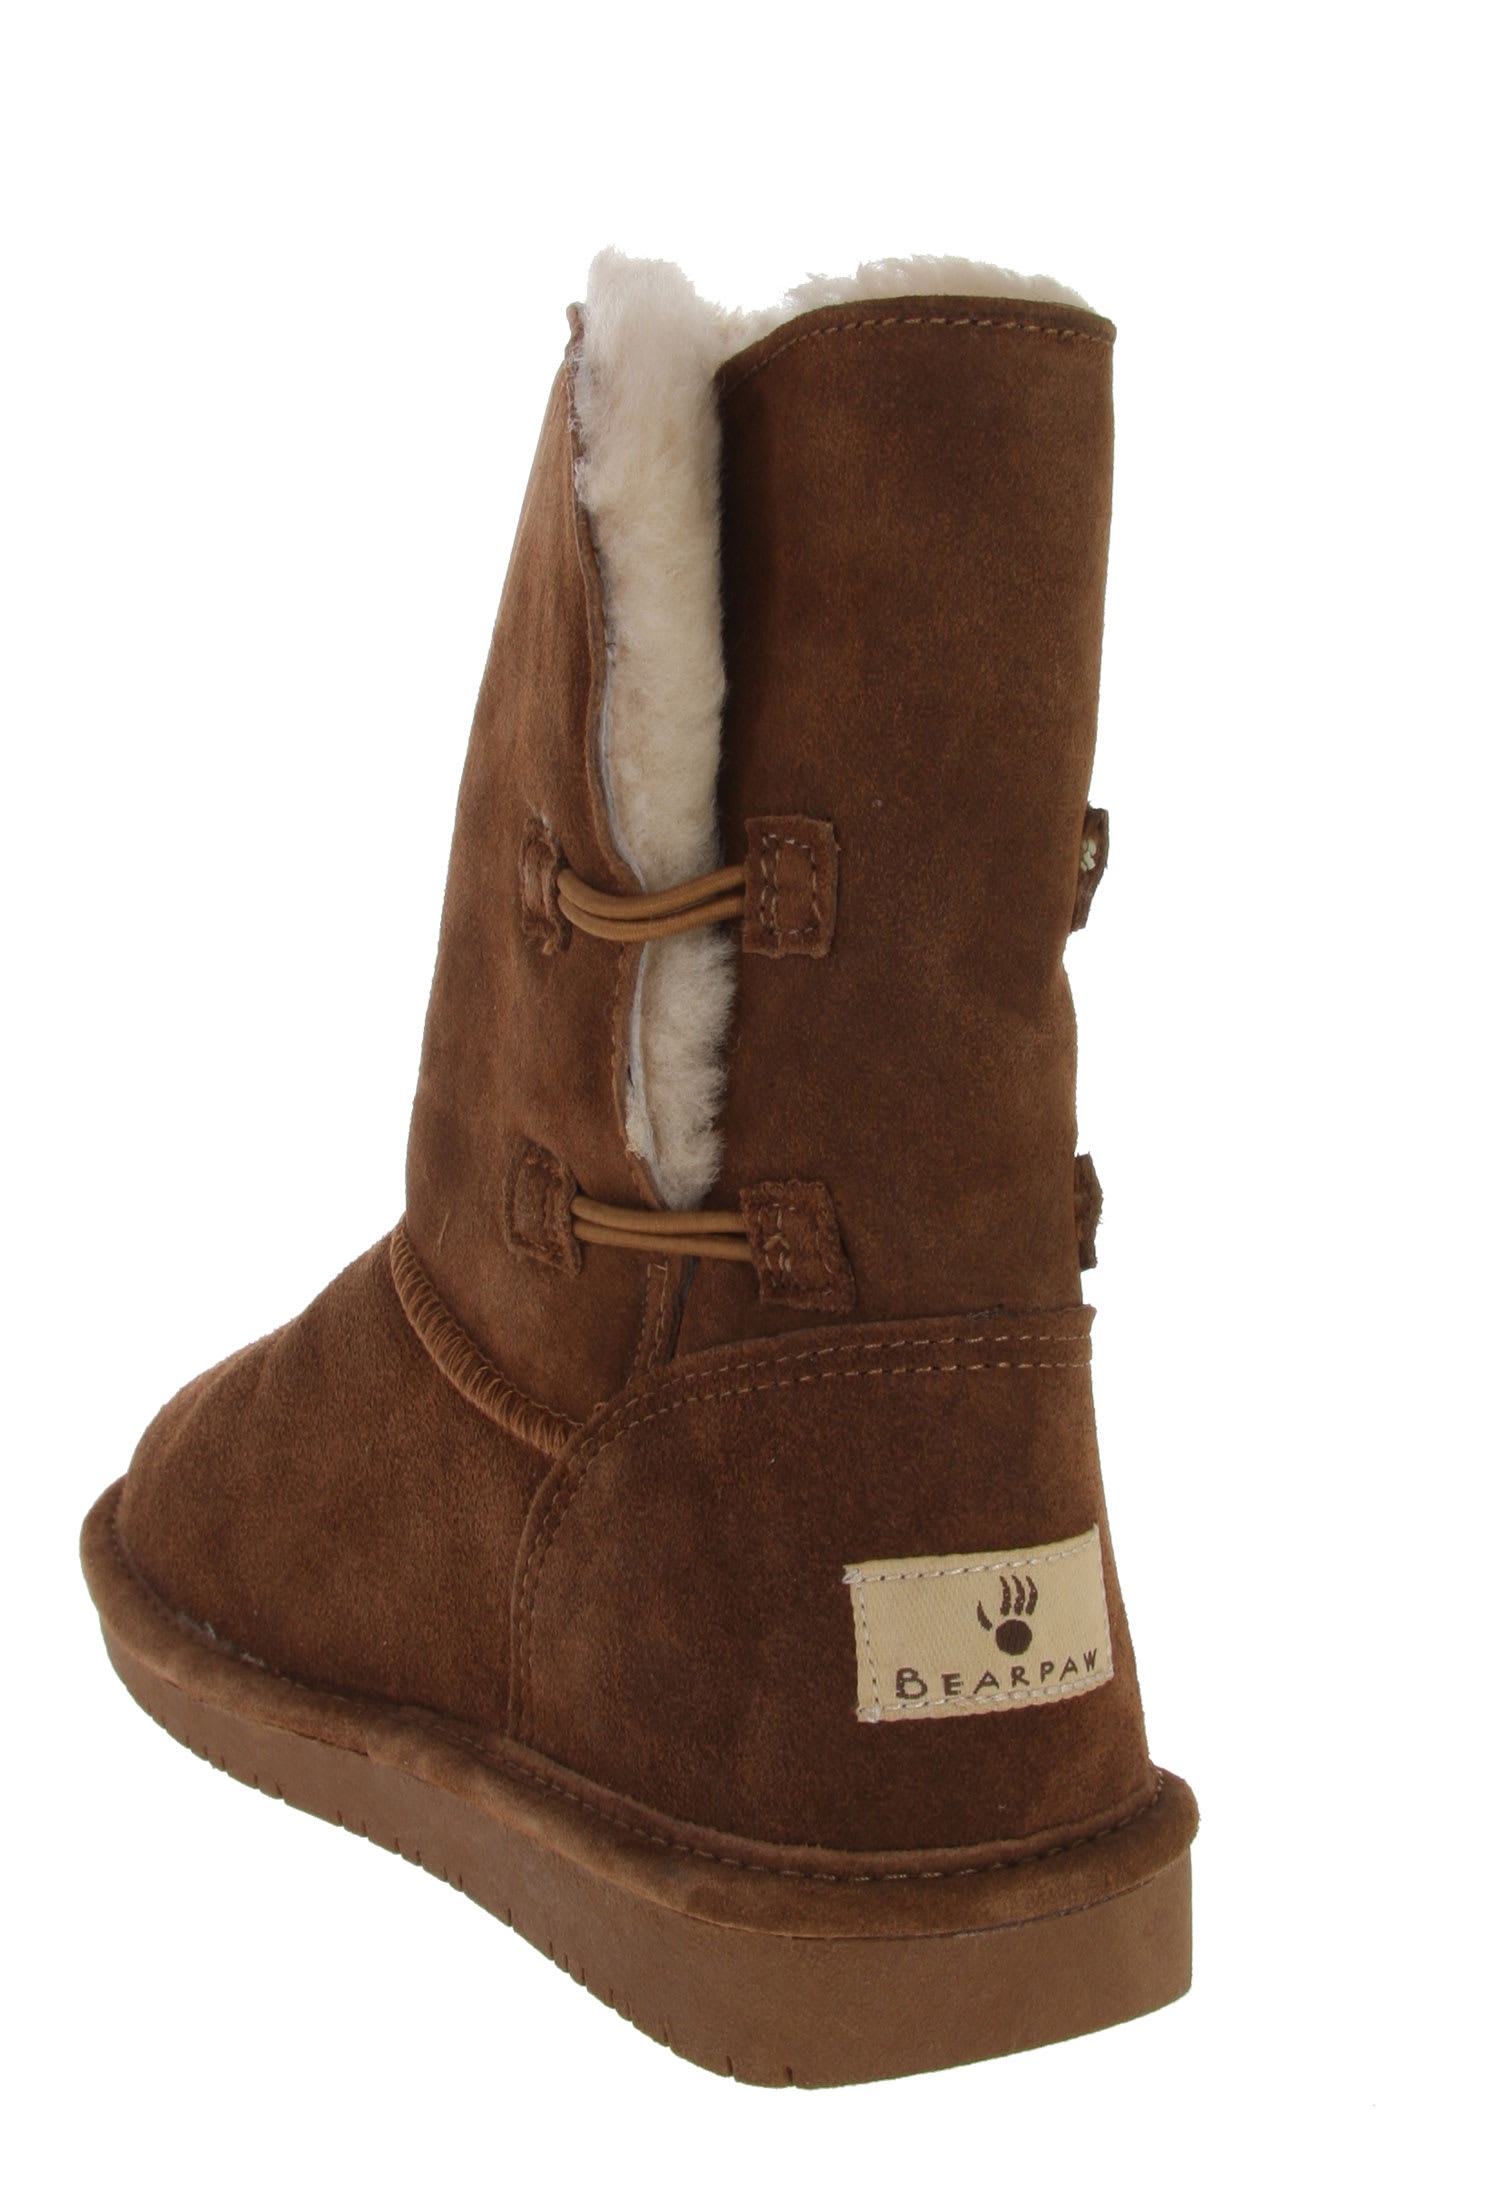 On Sale Bearpaw Abigail 8 Inch Street Boots Womens Up To